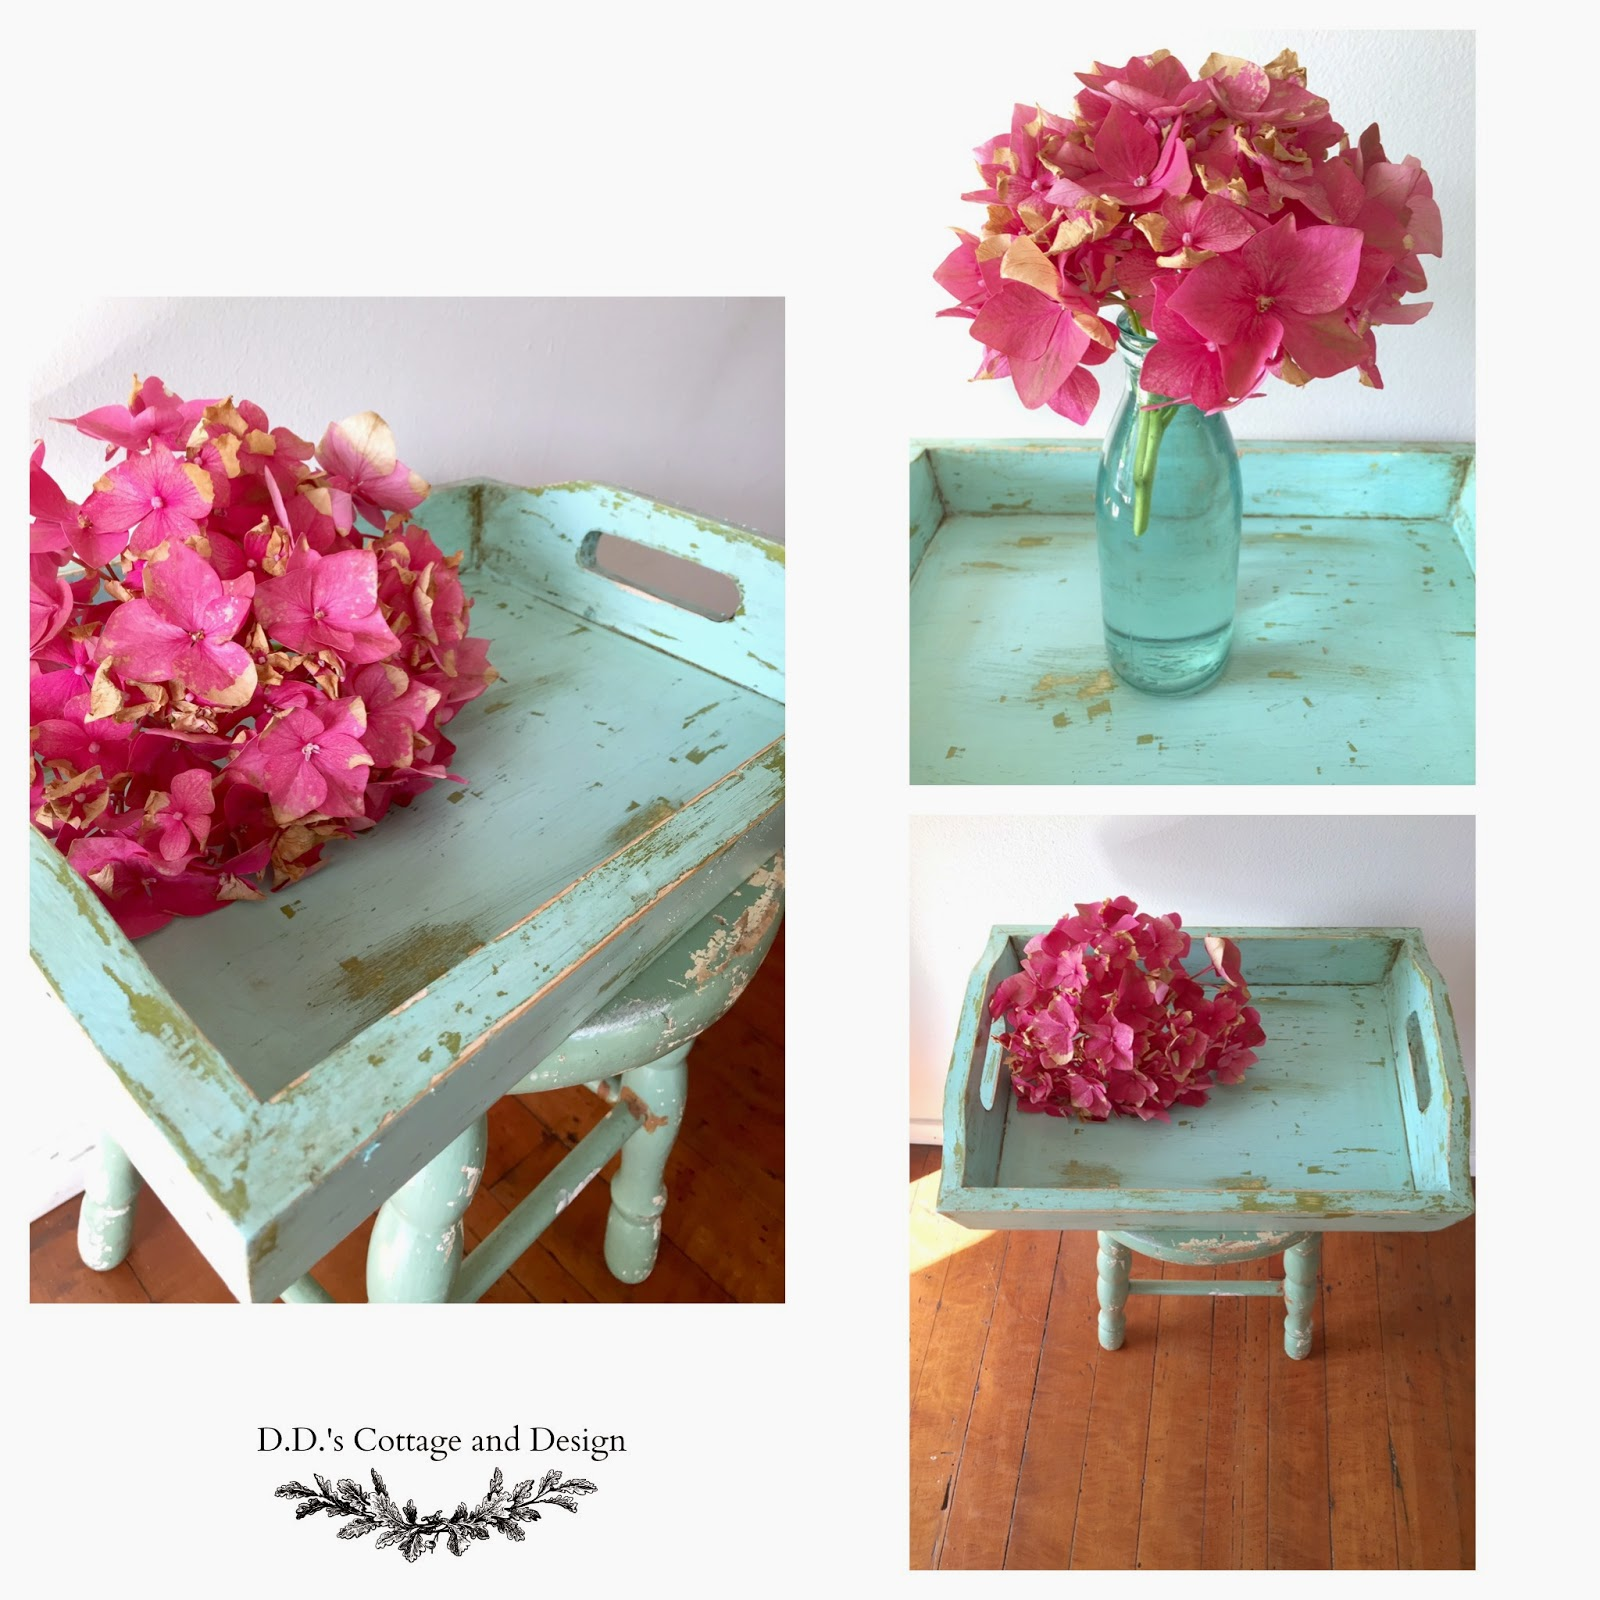 Giving a tray a Beach/Shabby makeover and some character